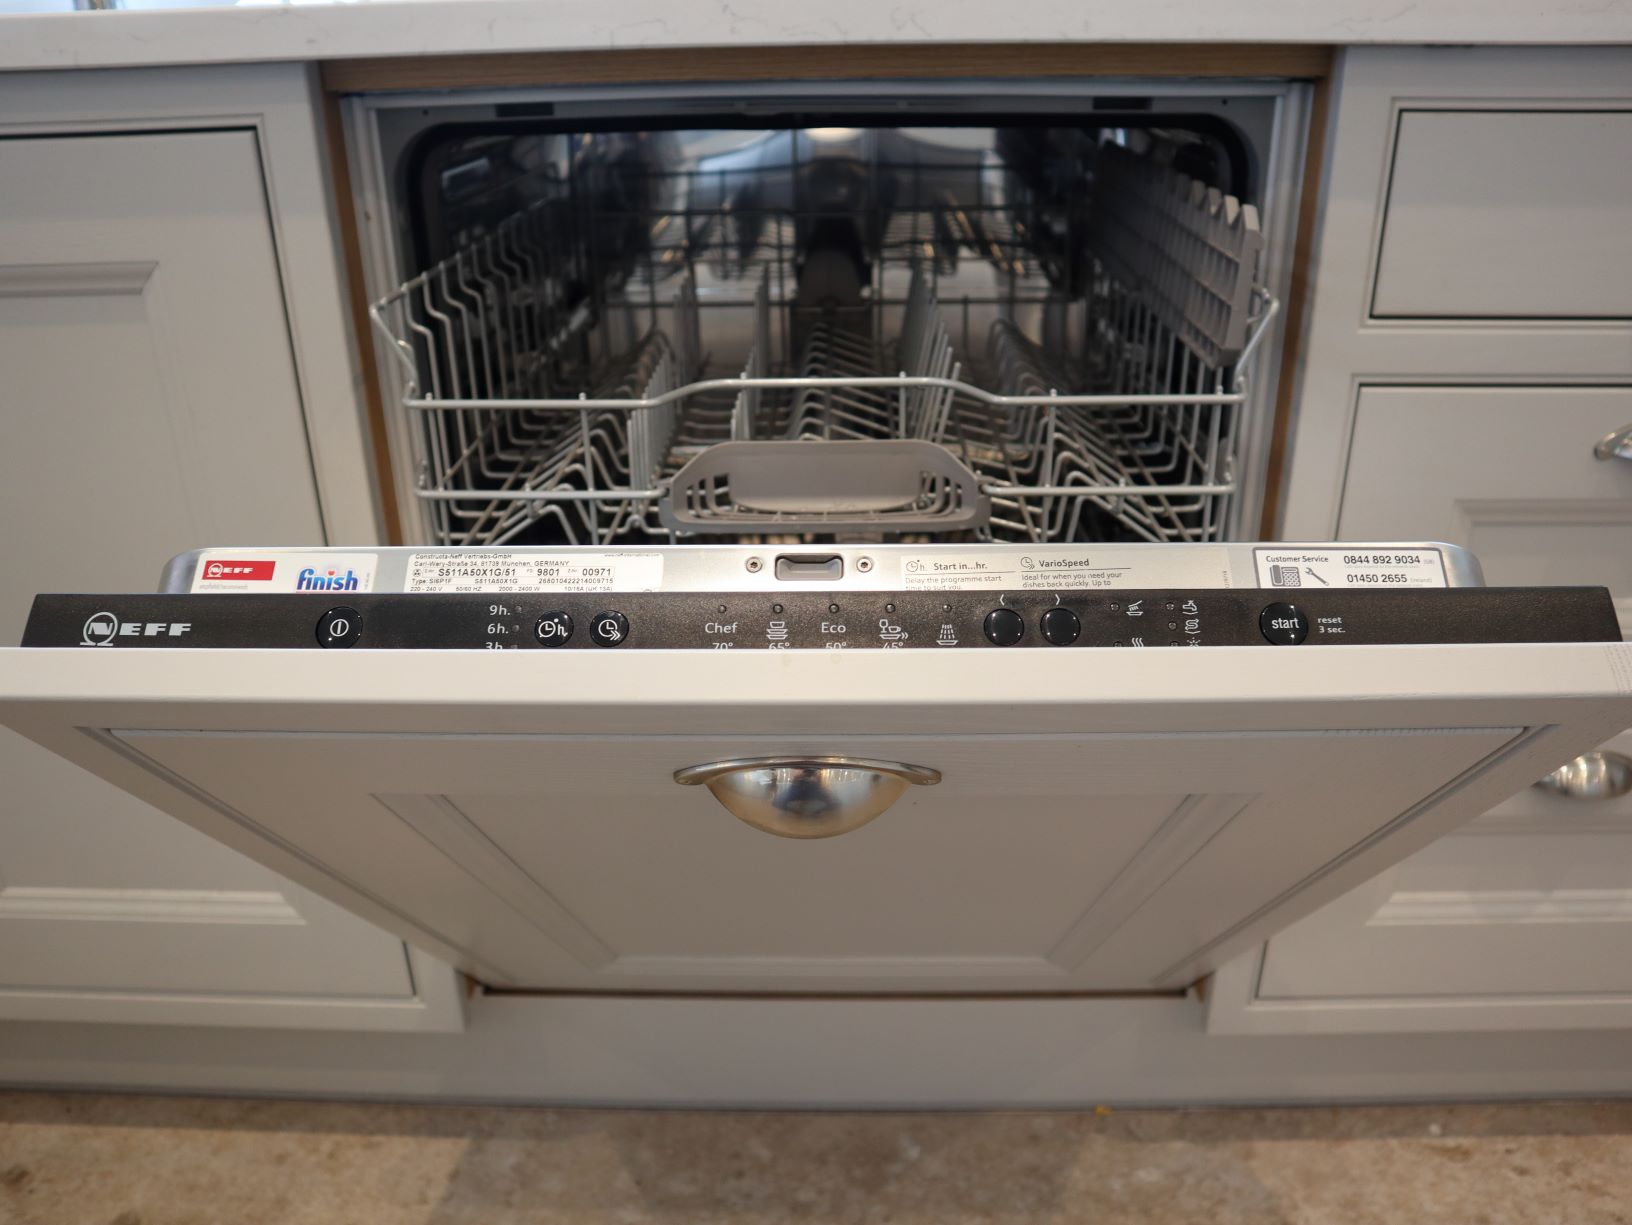 Thwaite Integrated Dishwasher in Light Grey